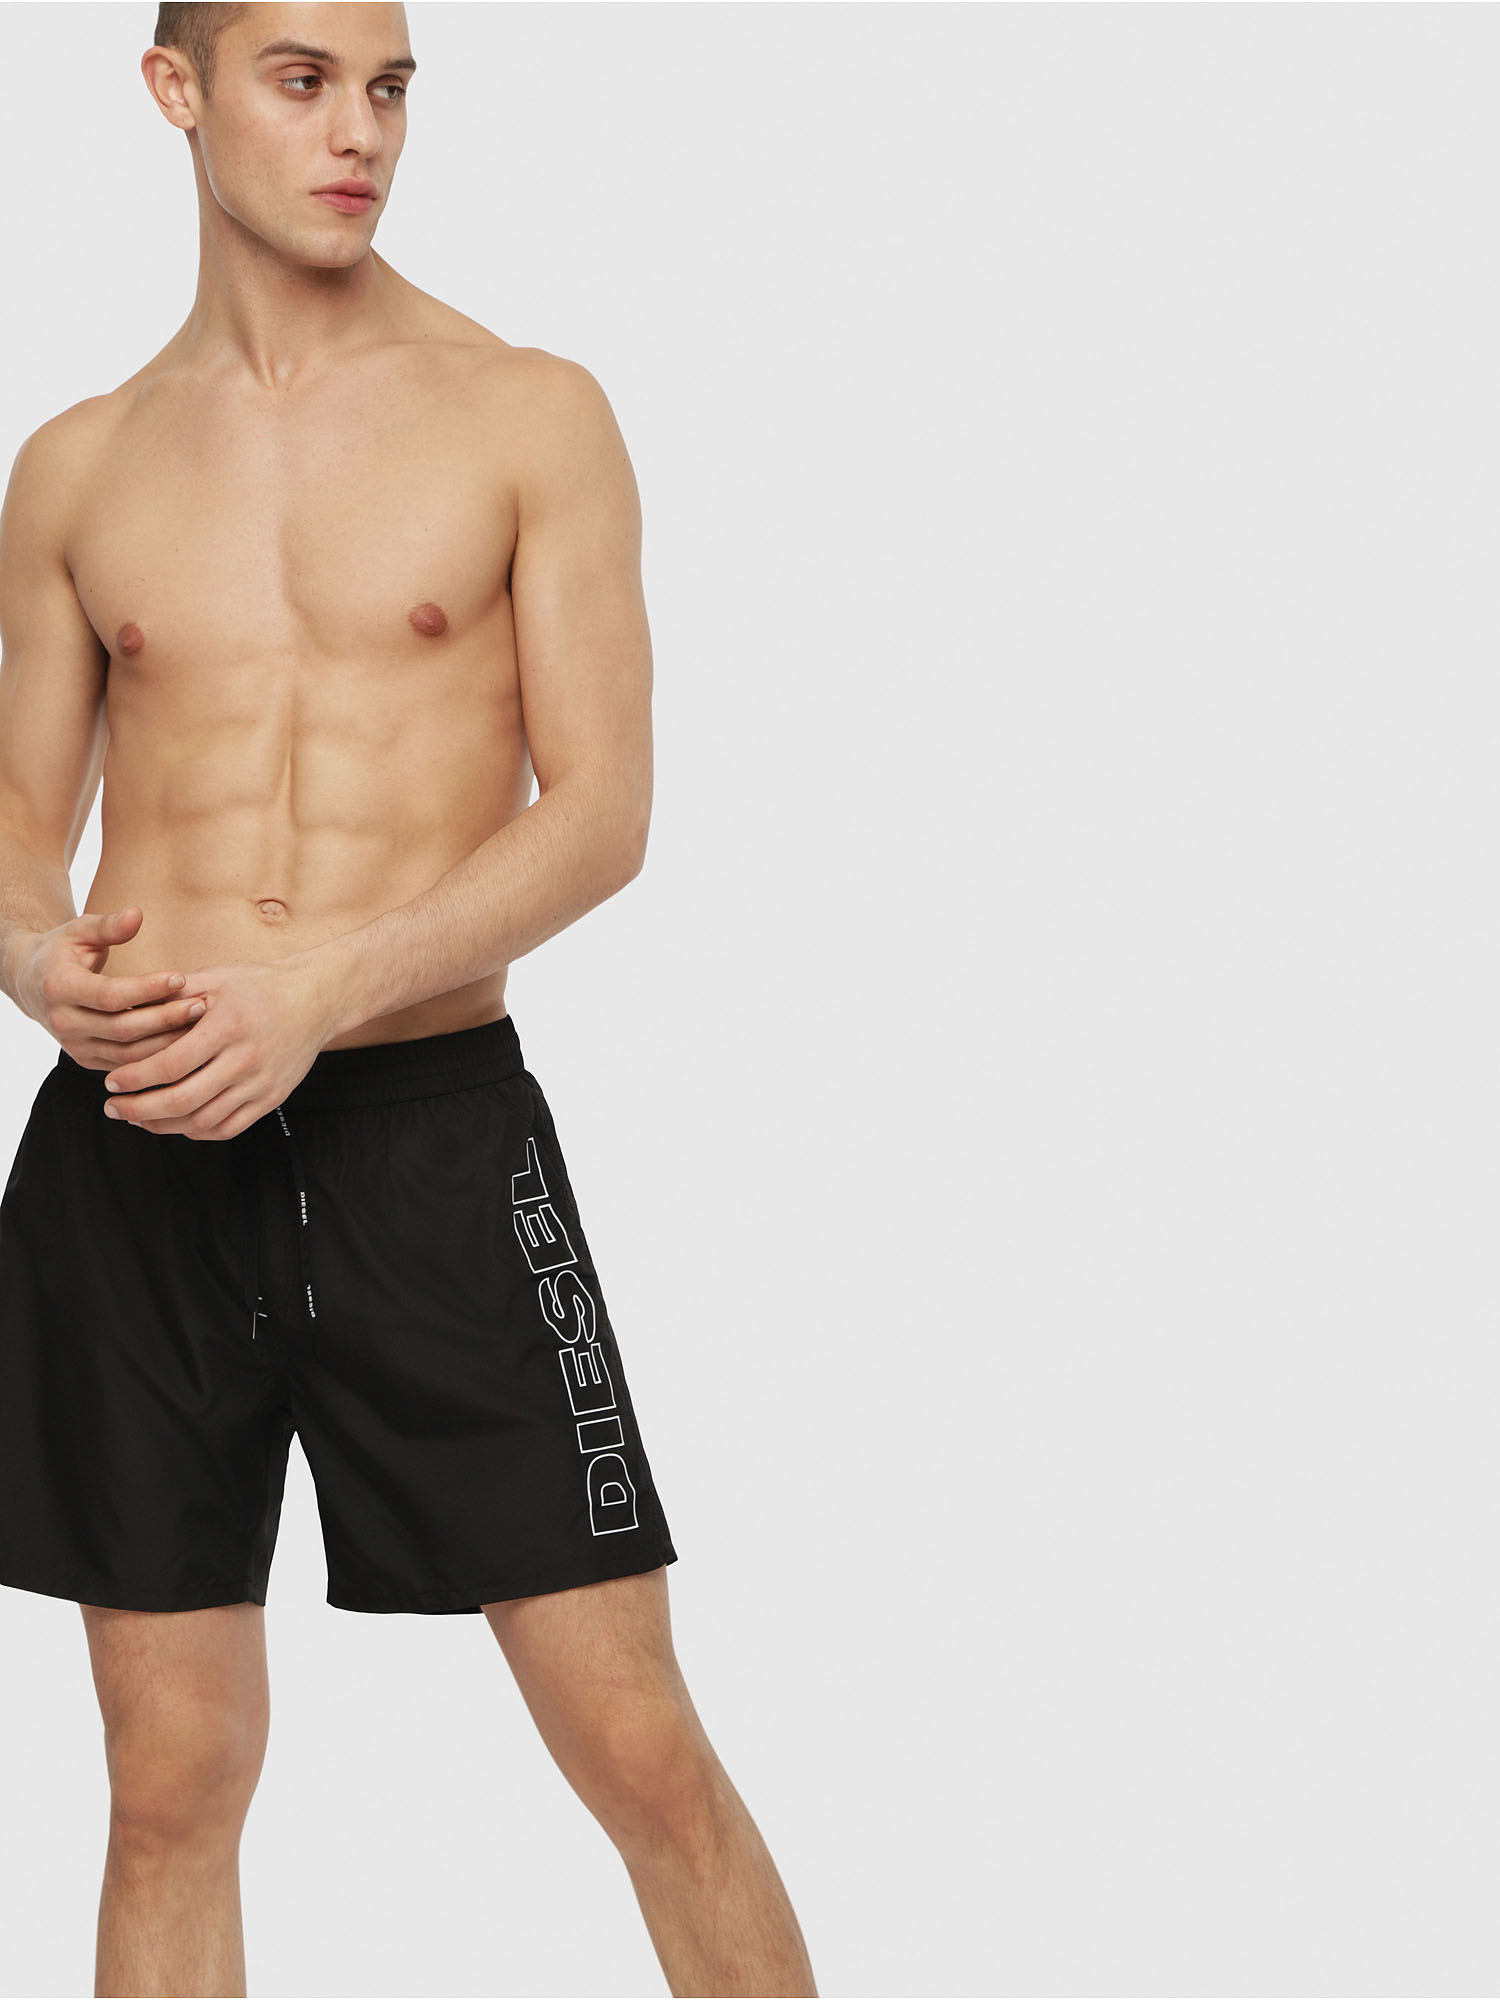 Diesel - BMBX-WAVE 2.017,  - Swim shorts - Image 1